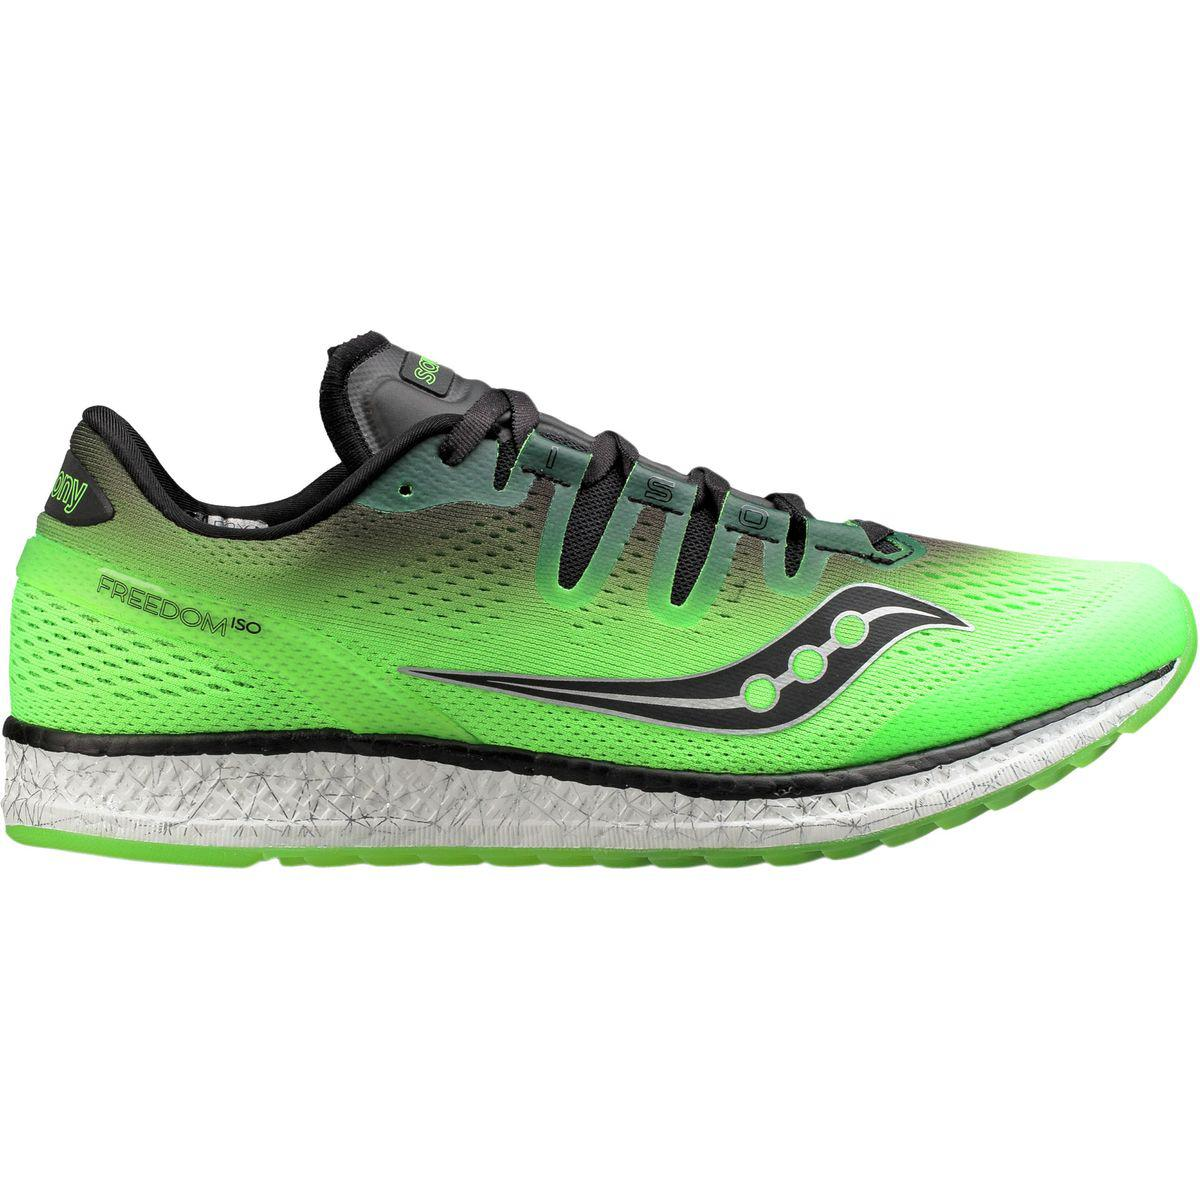 8f048a94db3 Lyst - Saucony Freedom Iso Running Shoe in Green for Men